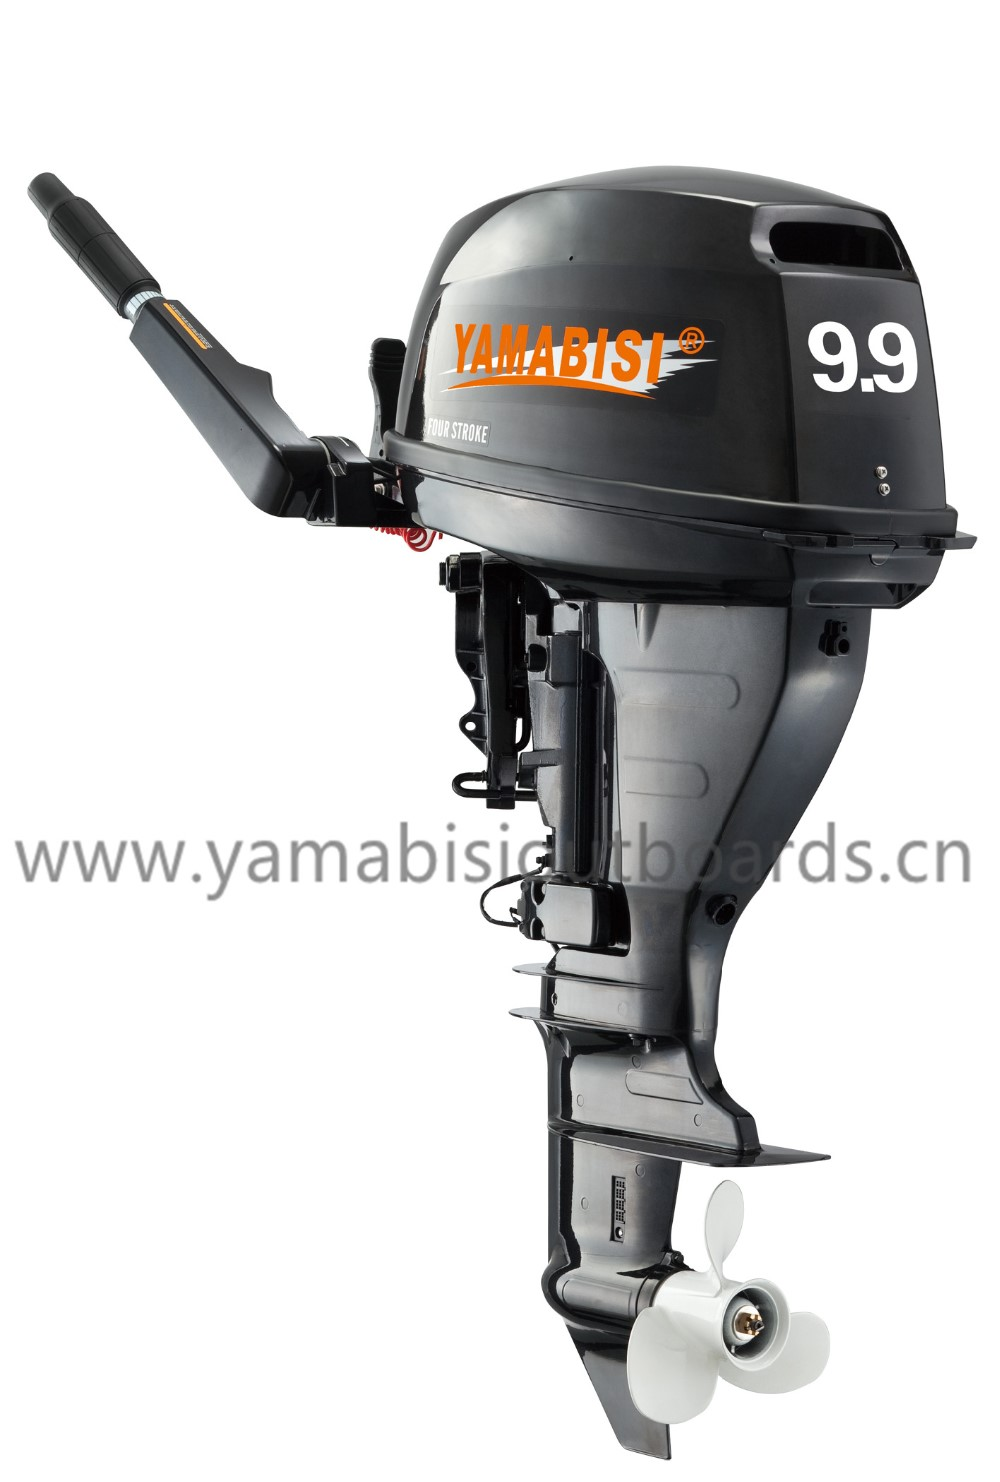 CE-Approved 4 stroke 9.8HP 15HP YAMABISI outboard engine/motor